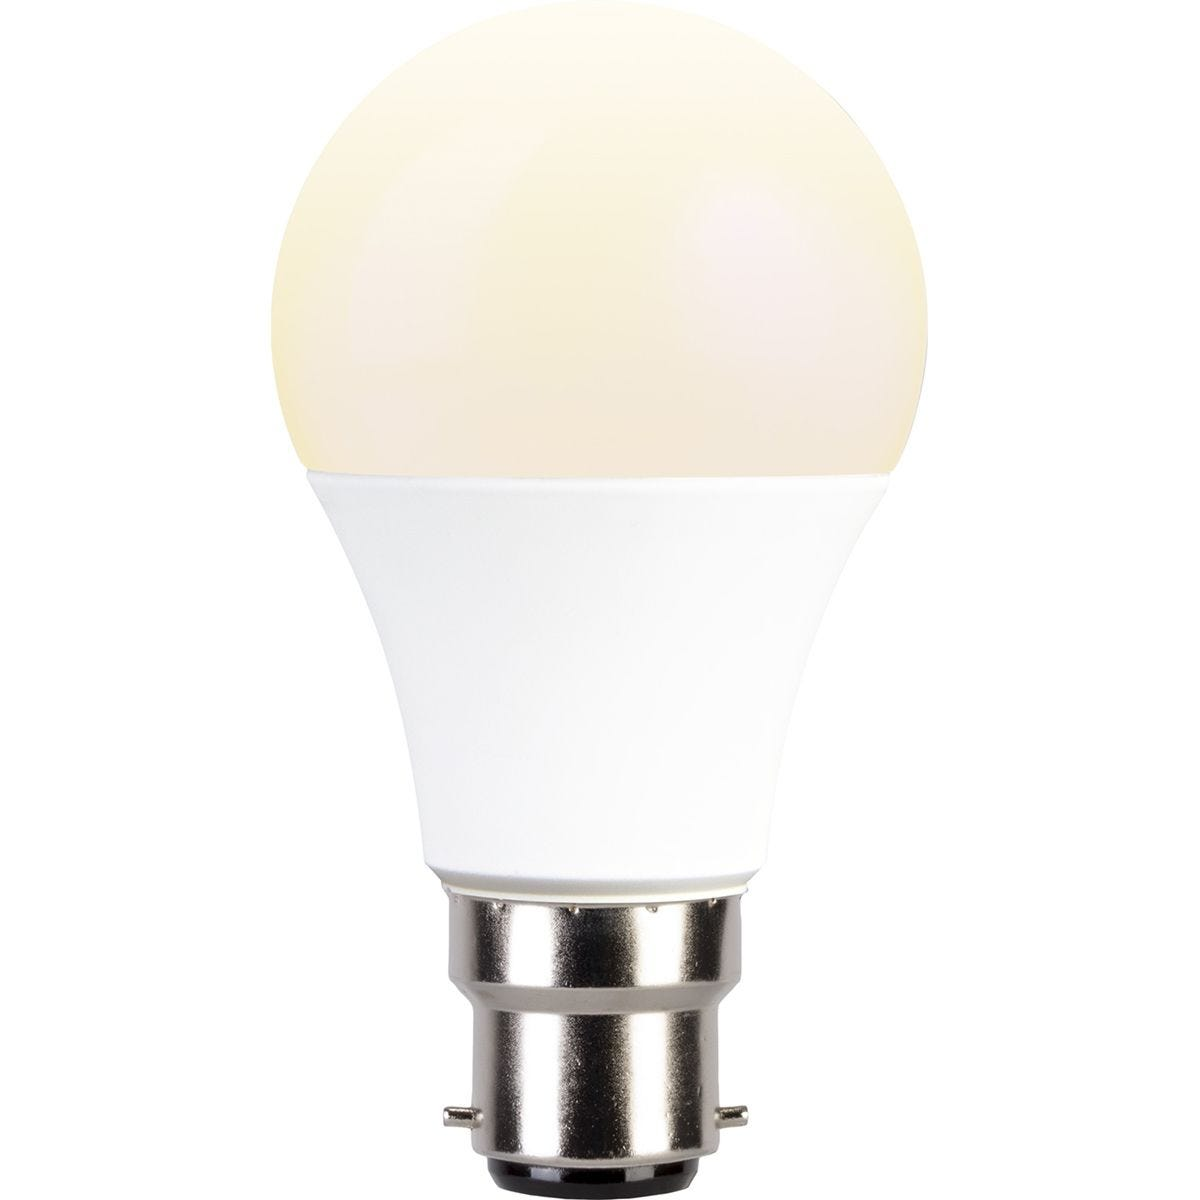 TCP Smart WiFi Dimmable Warm White LED Bayonet 60W Light Bulb - No Hub Required